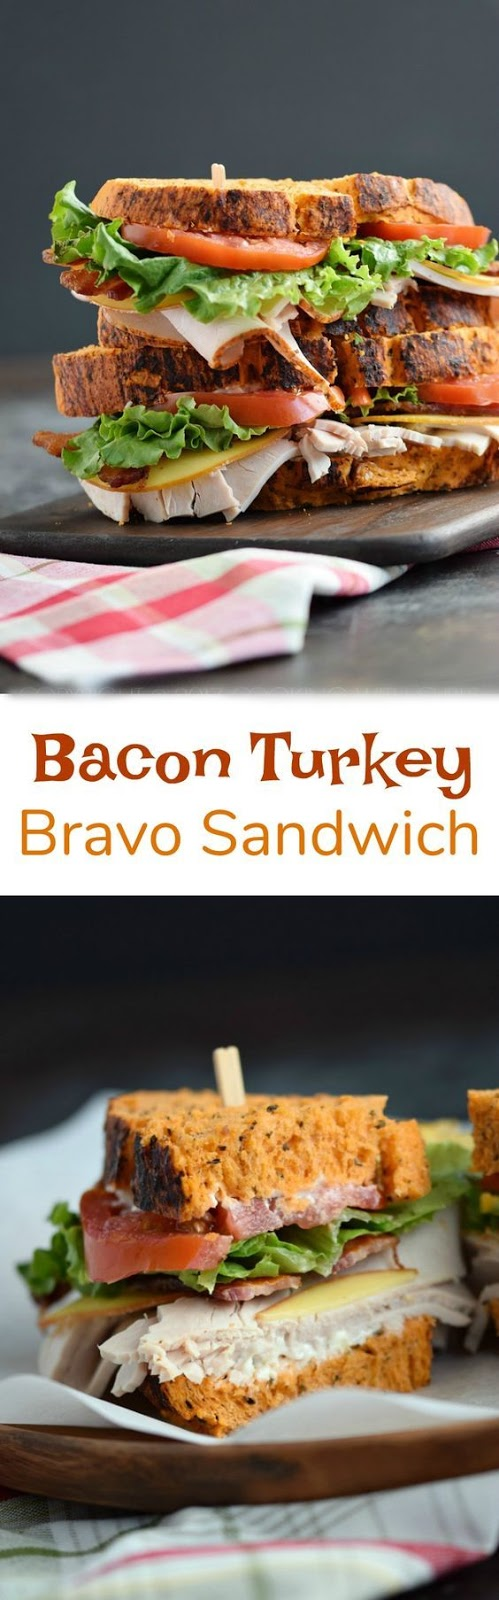 Bacon Turkey Bravo Sandwich